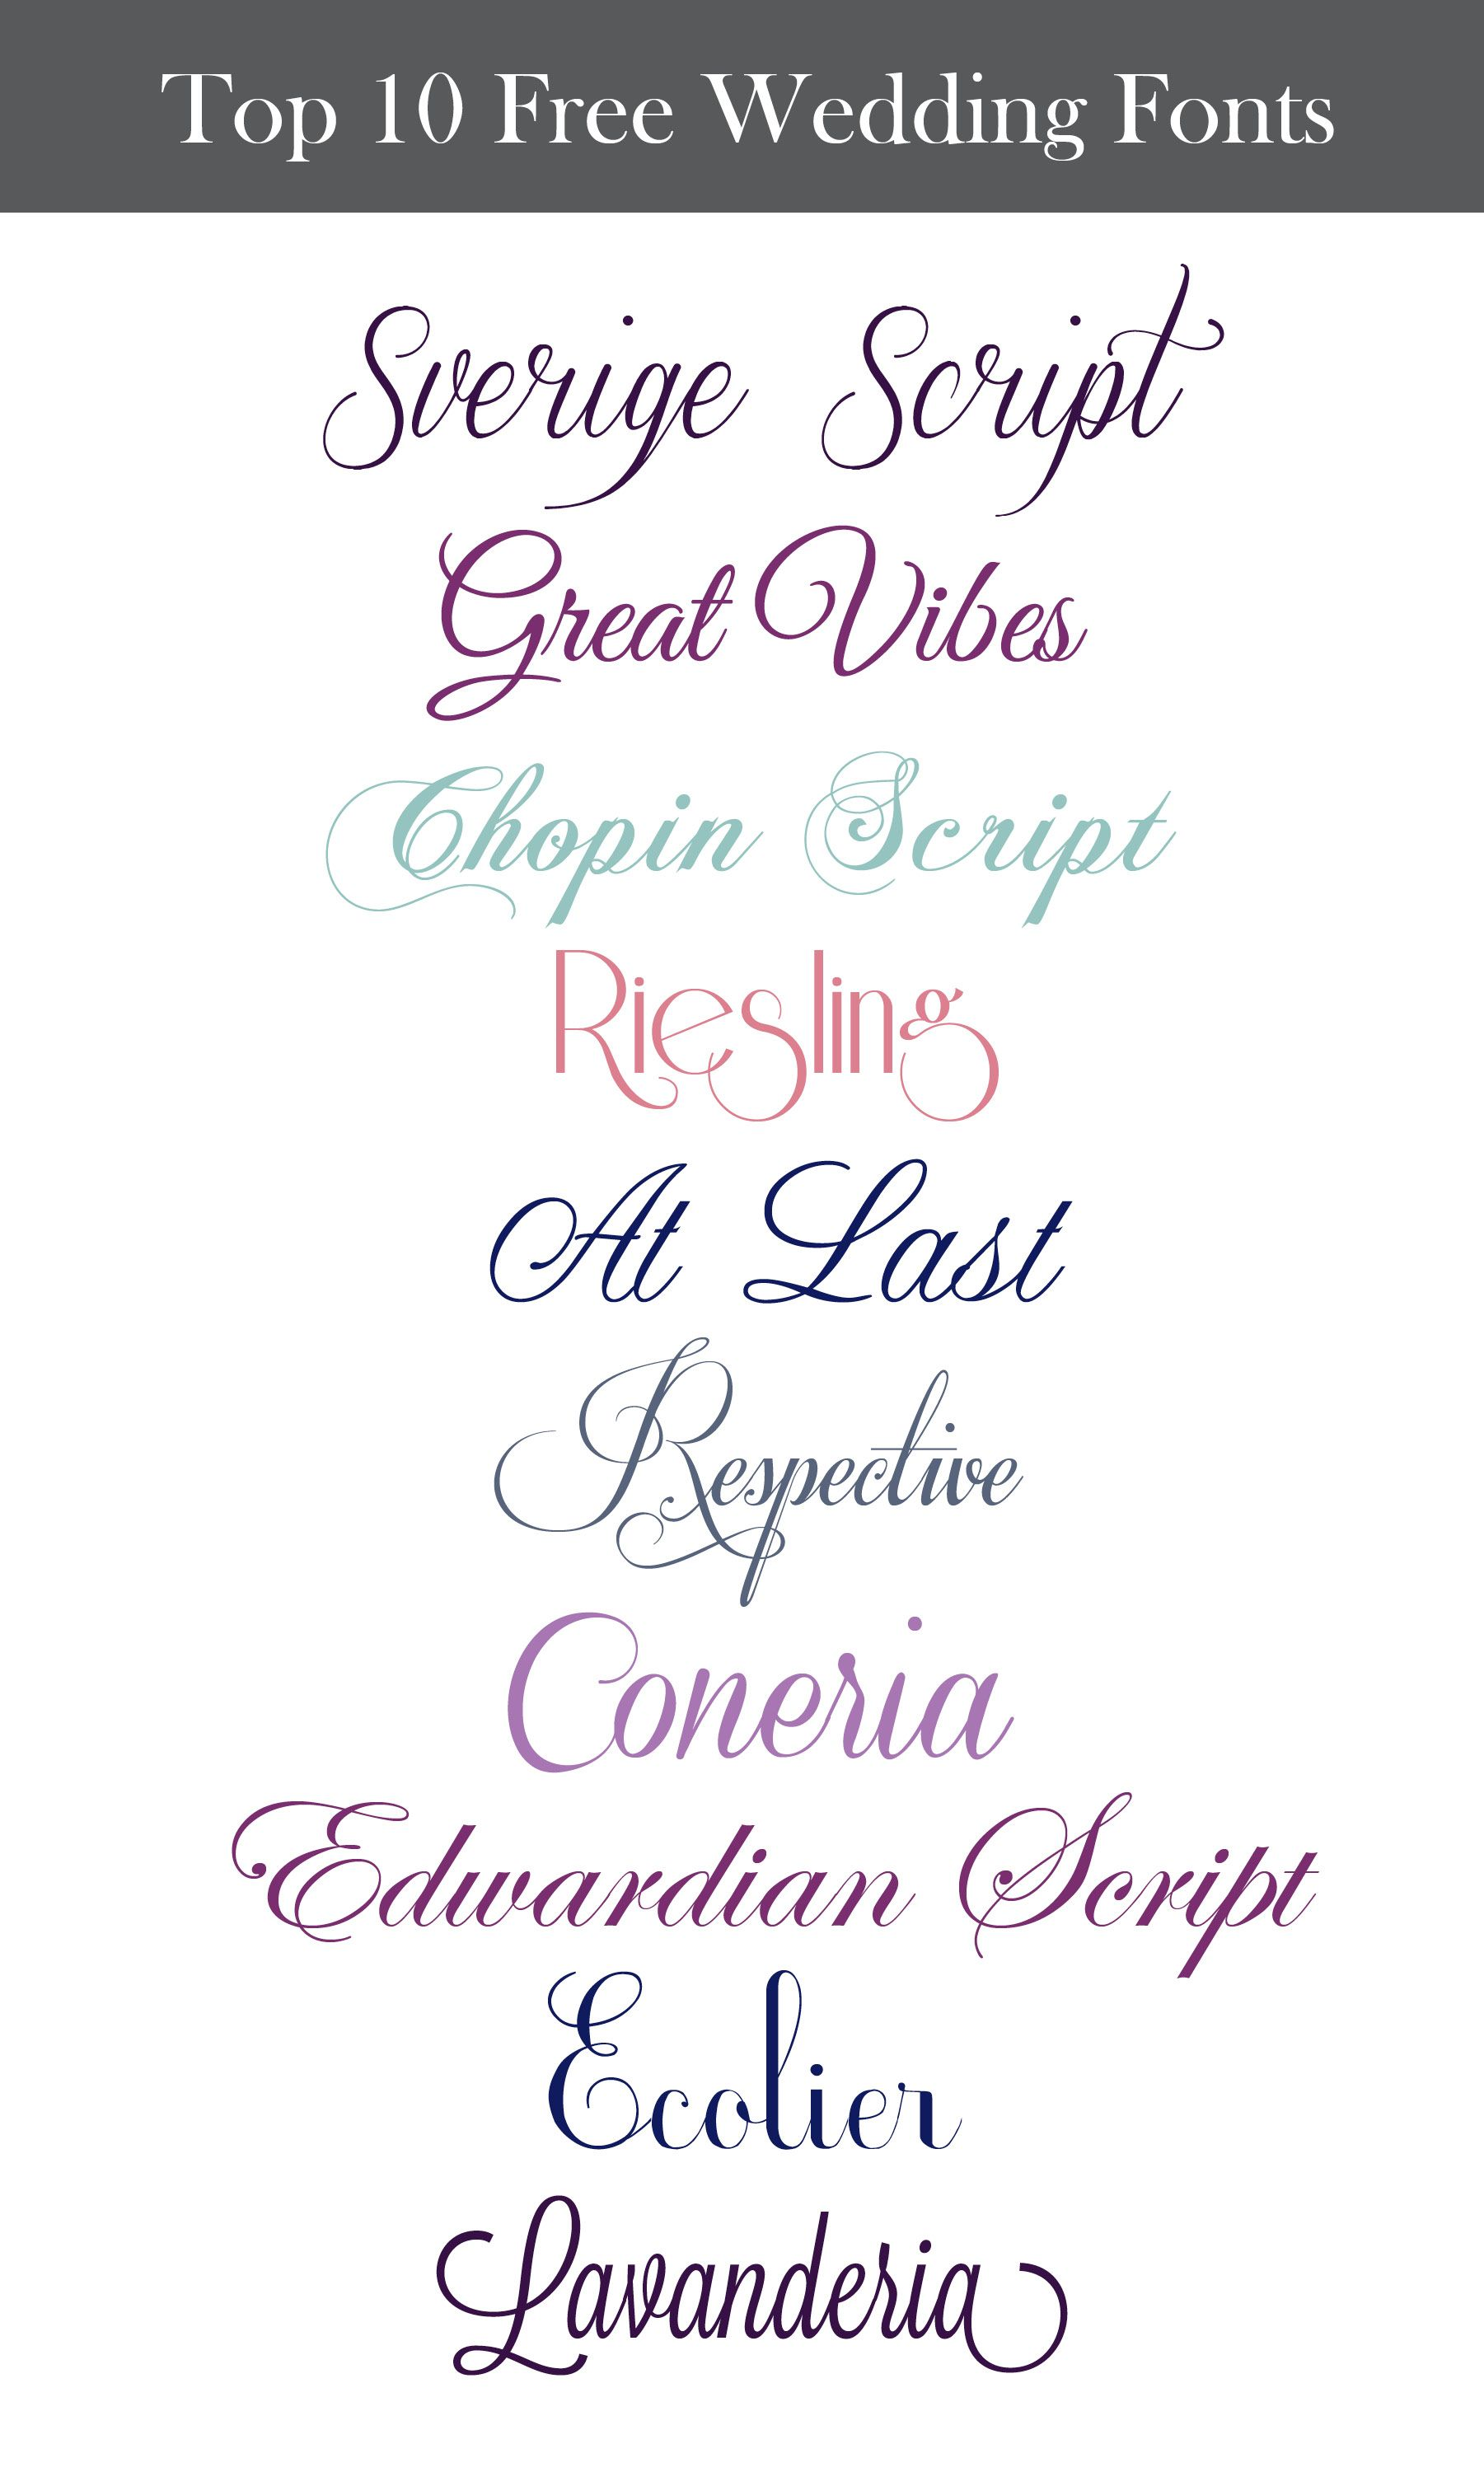 Inspiration Wednesday Free Wedding Fonts Wedding Pinterest